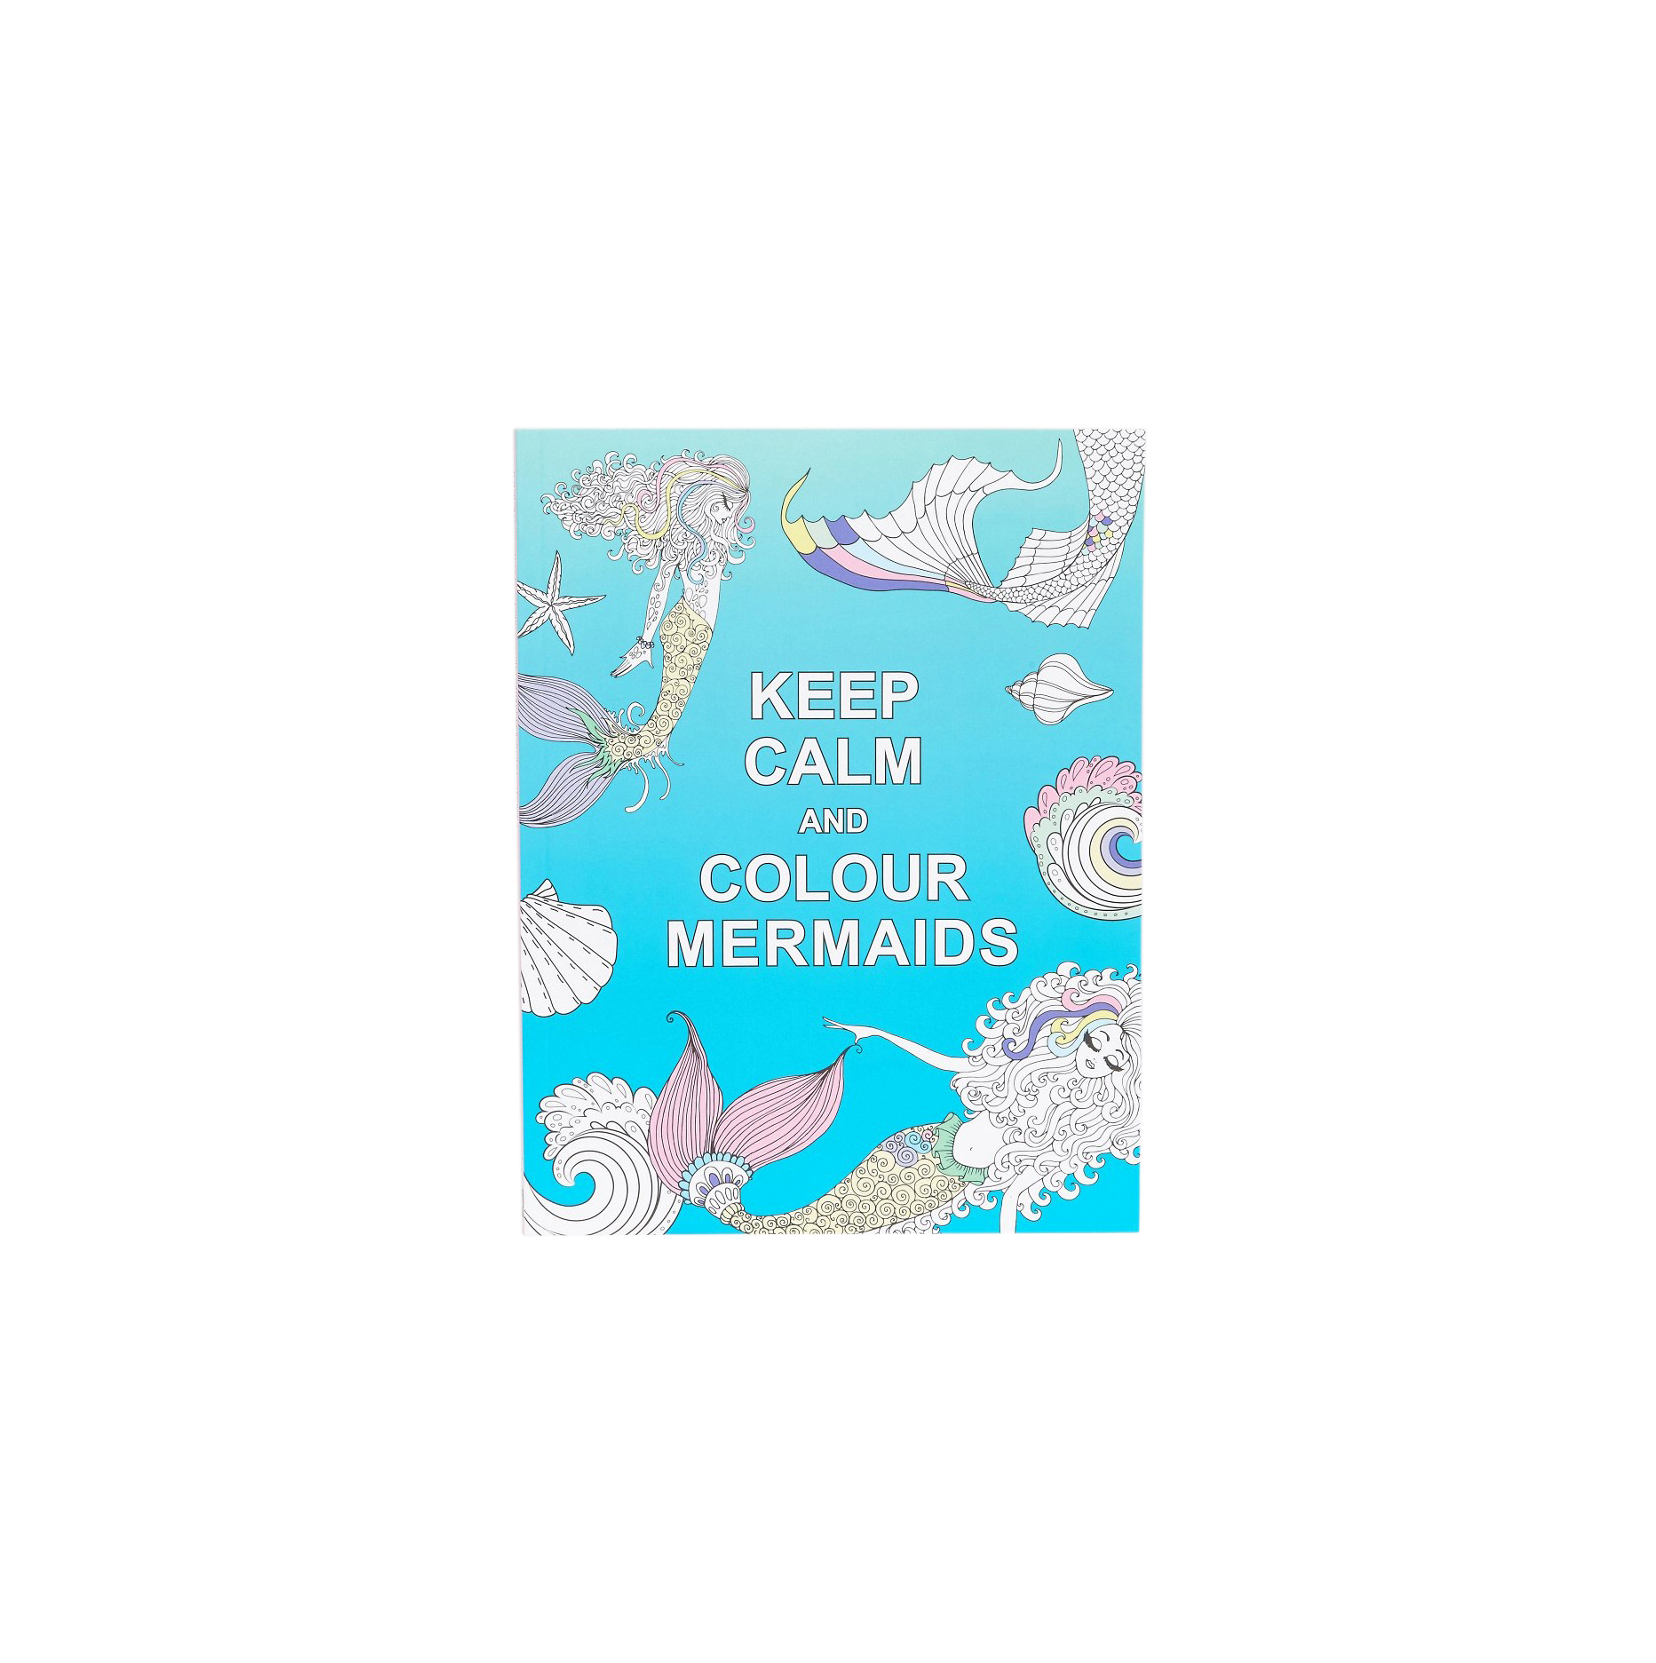 Funny Valentine's Day Gift Ideas: Keep Calm and Colour Mermaids coloring book